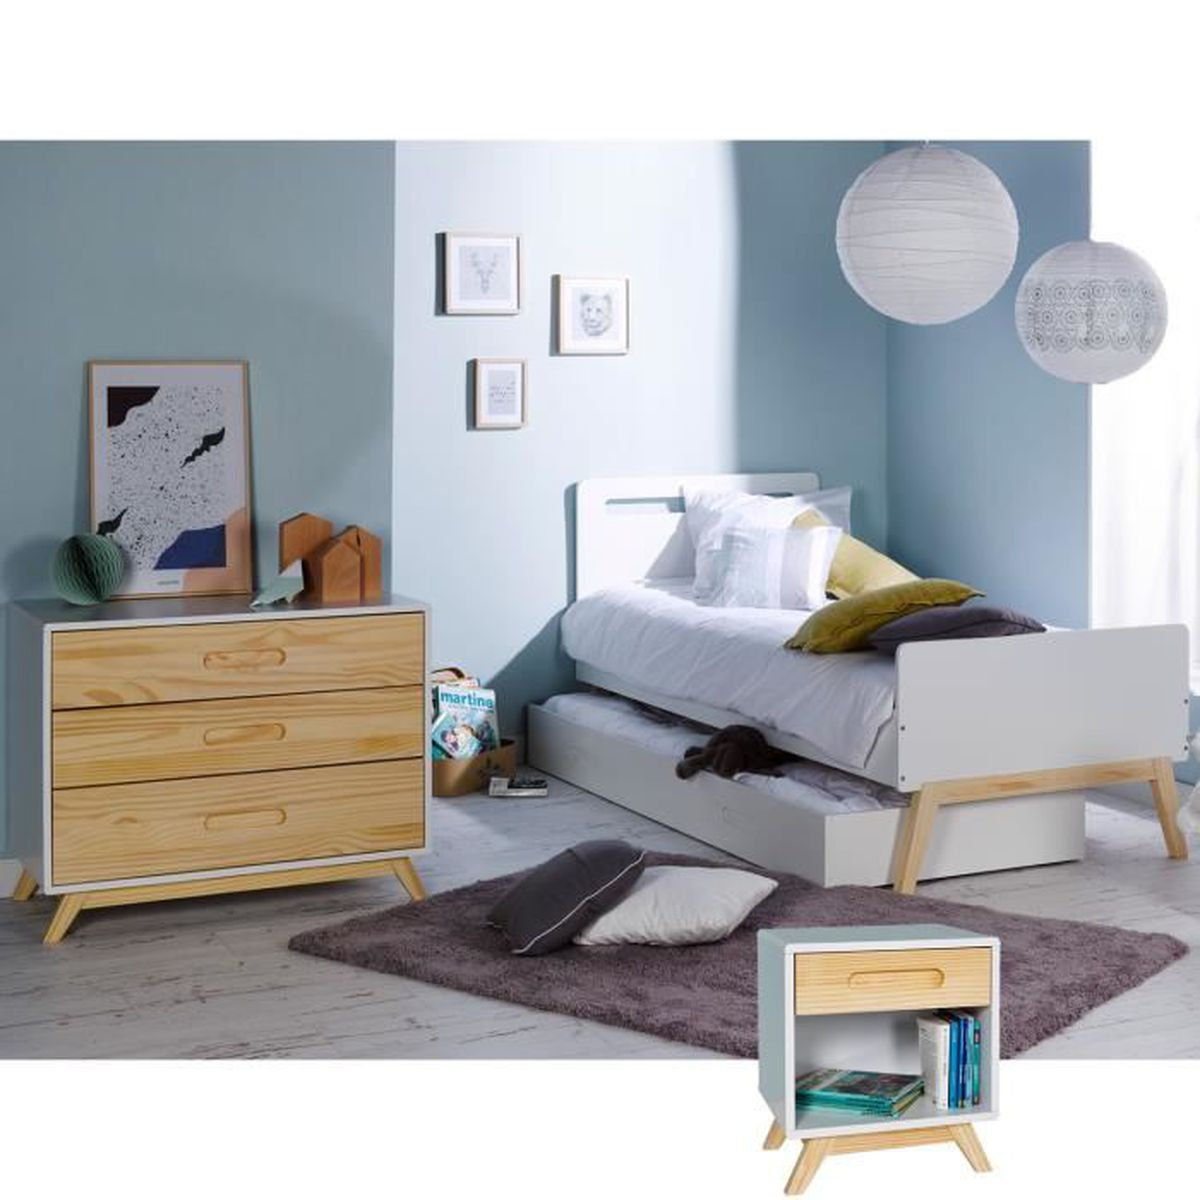 chambre enfant scandinave lit 90x200 achat vente. Black Bedroom Furniture Sets. Home Design Ideas